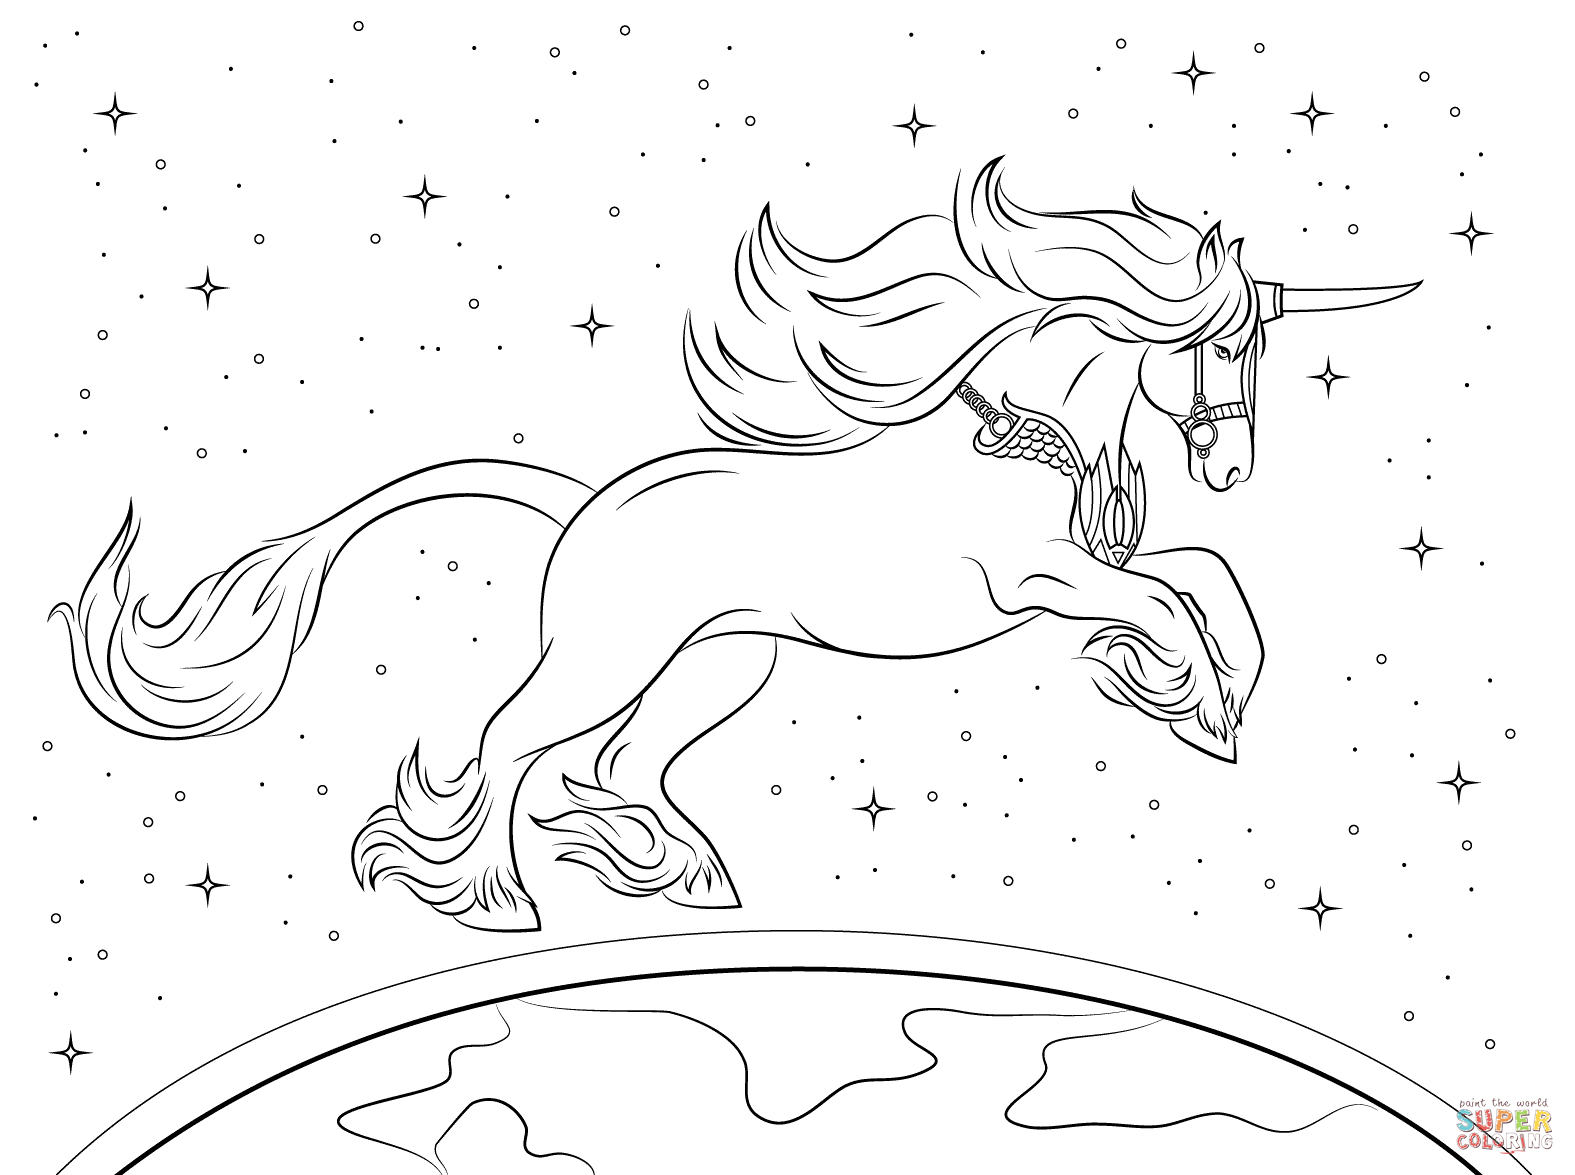 Unicorns Ran In Outer Space Coloring Pages For Kids Dkn Printable Unicorns Coloring Pages Unicorn Coloring Pages Horse Coloring Pages Cartoon Coloring Pages